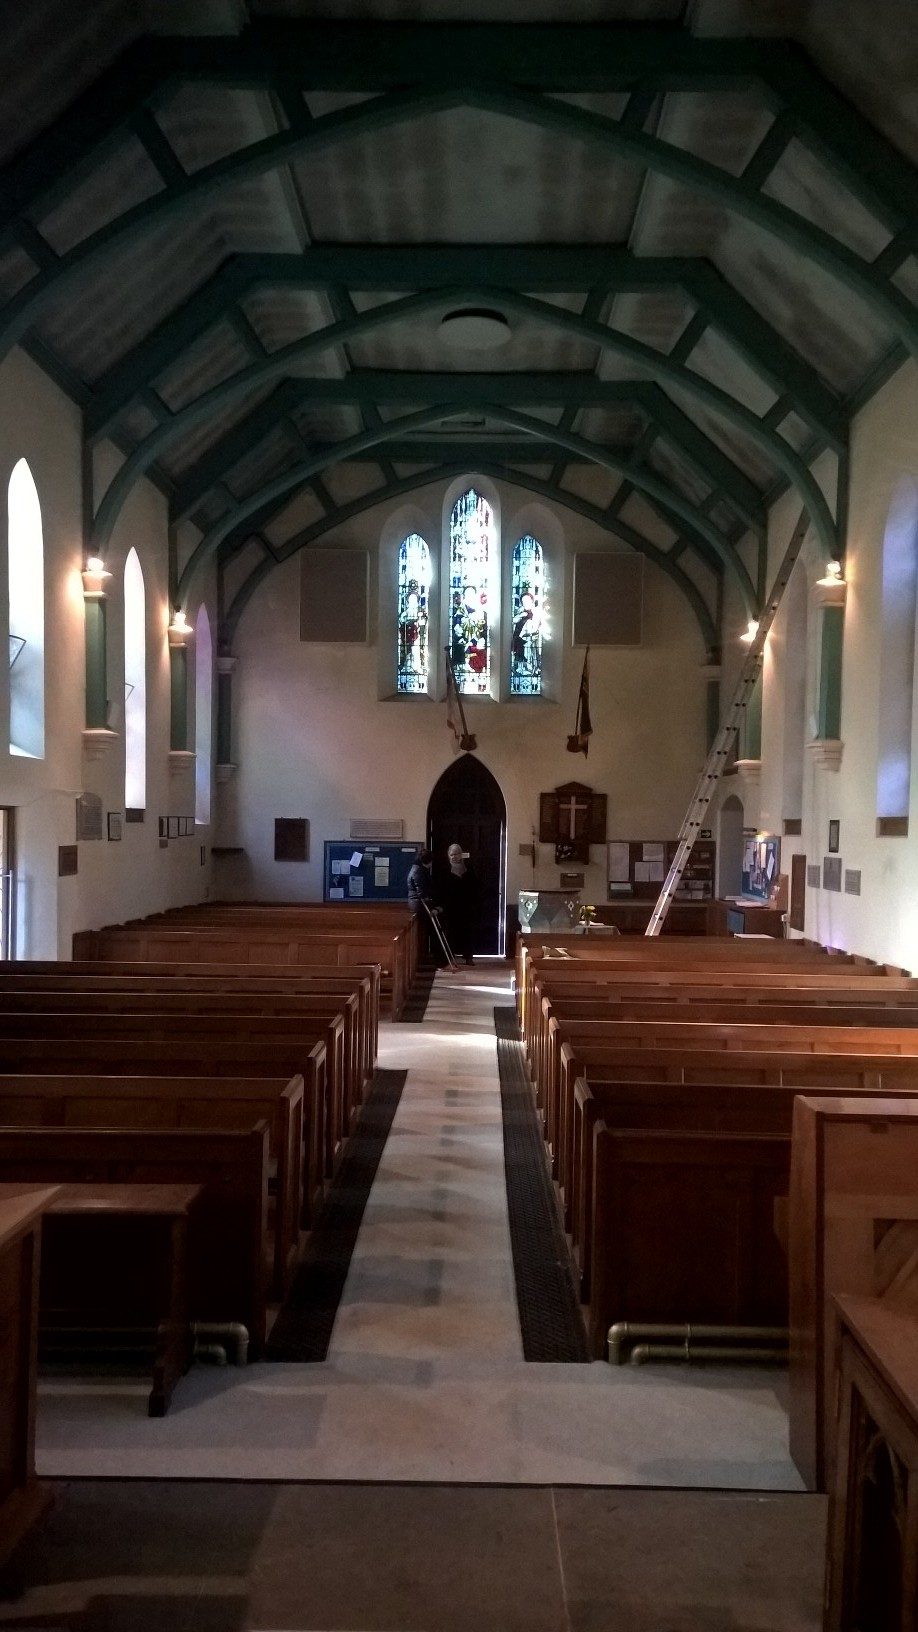 The interior of St John the Baptist church, showing the refurbishment of the interior taking place